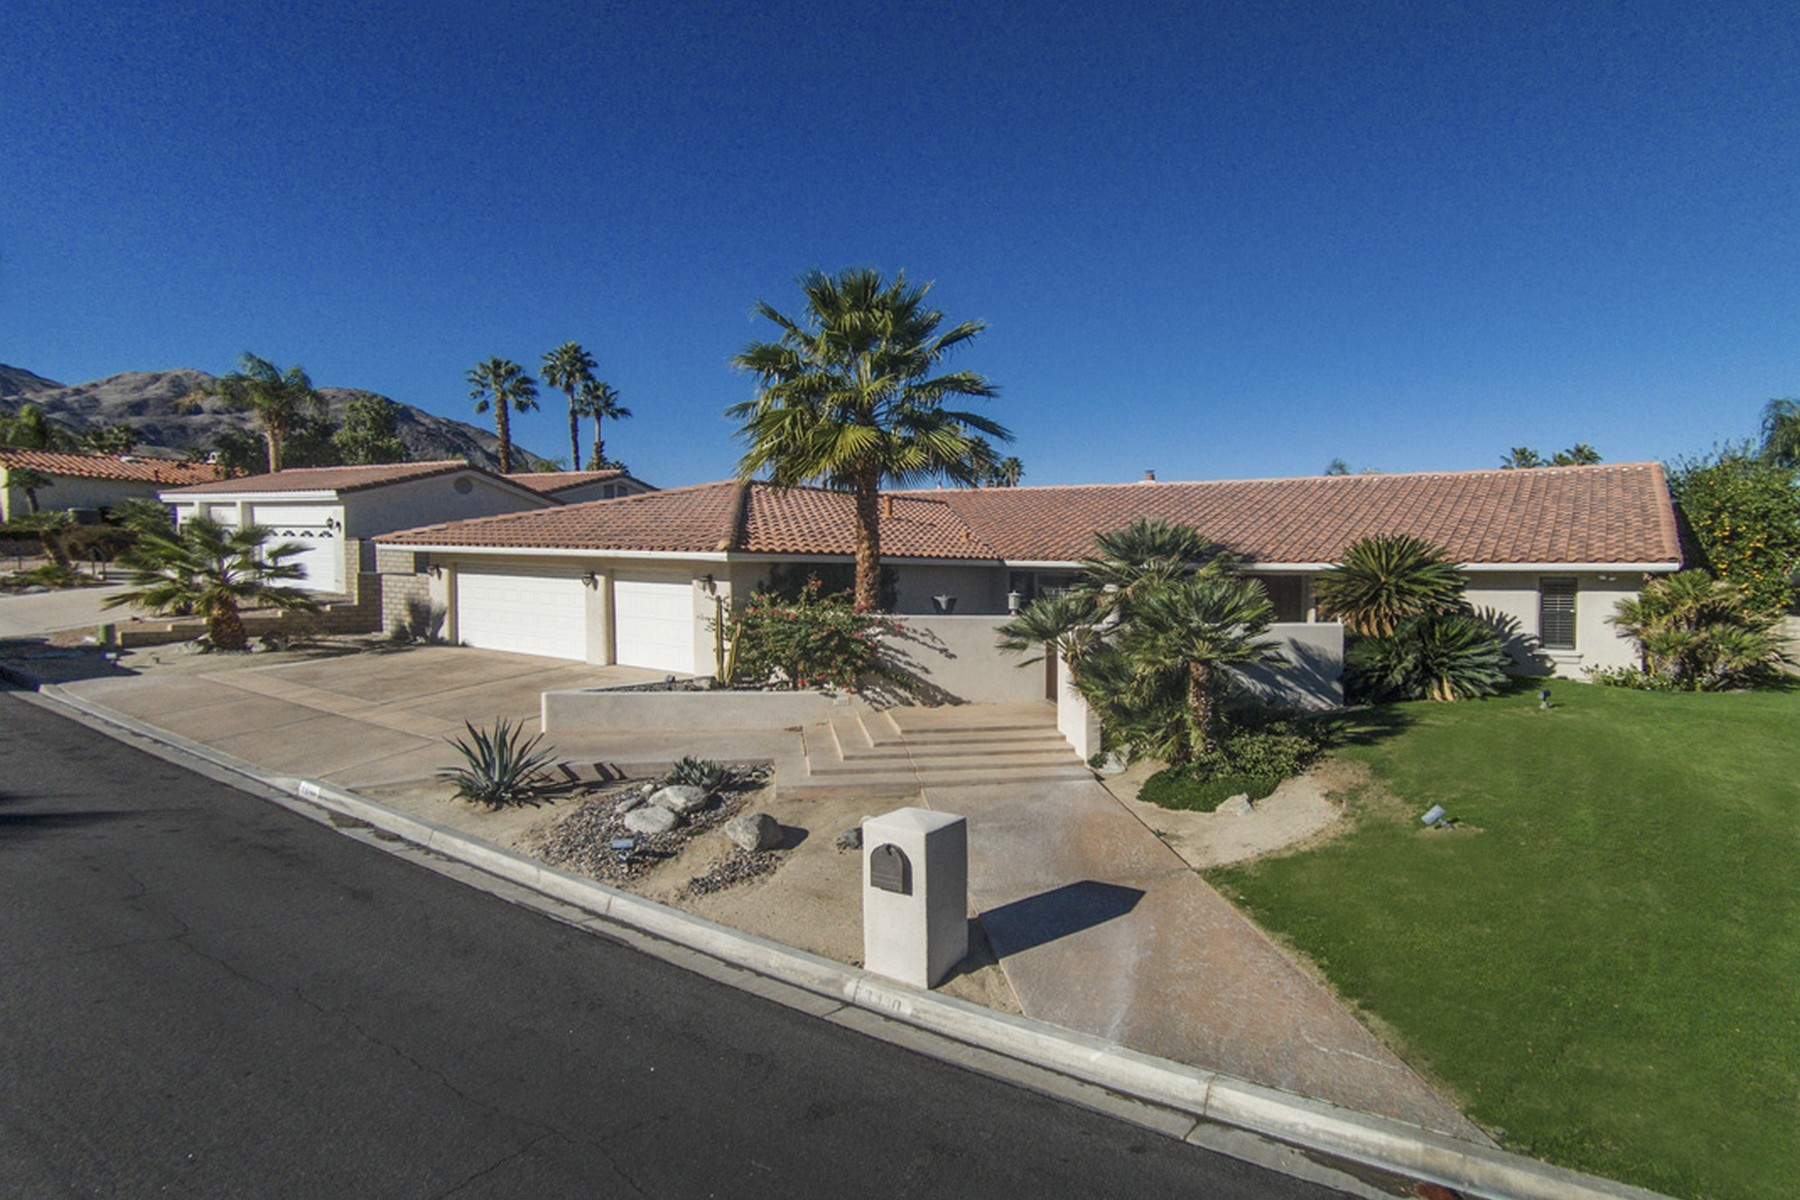 Single Family Home for Sale at 73130 Deer Grass Drive Palm Desert, California 92260 United States